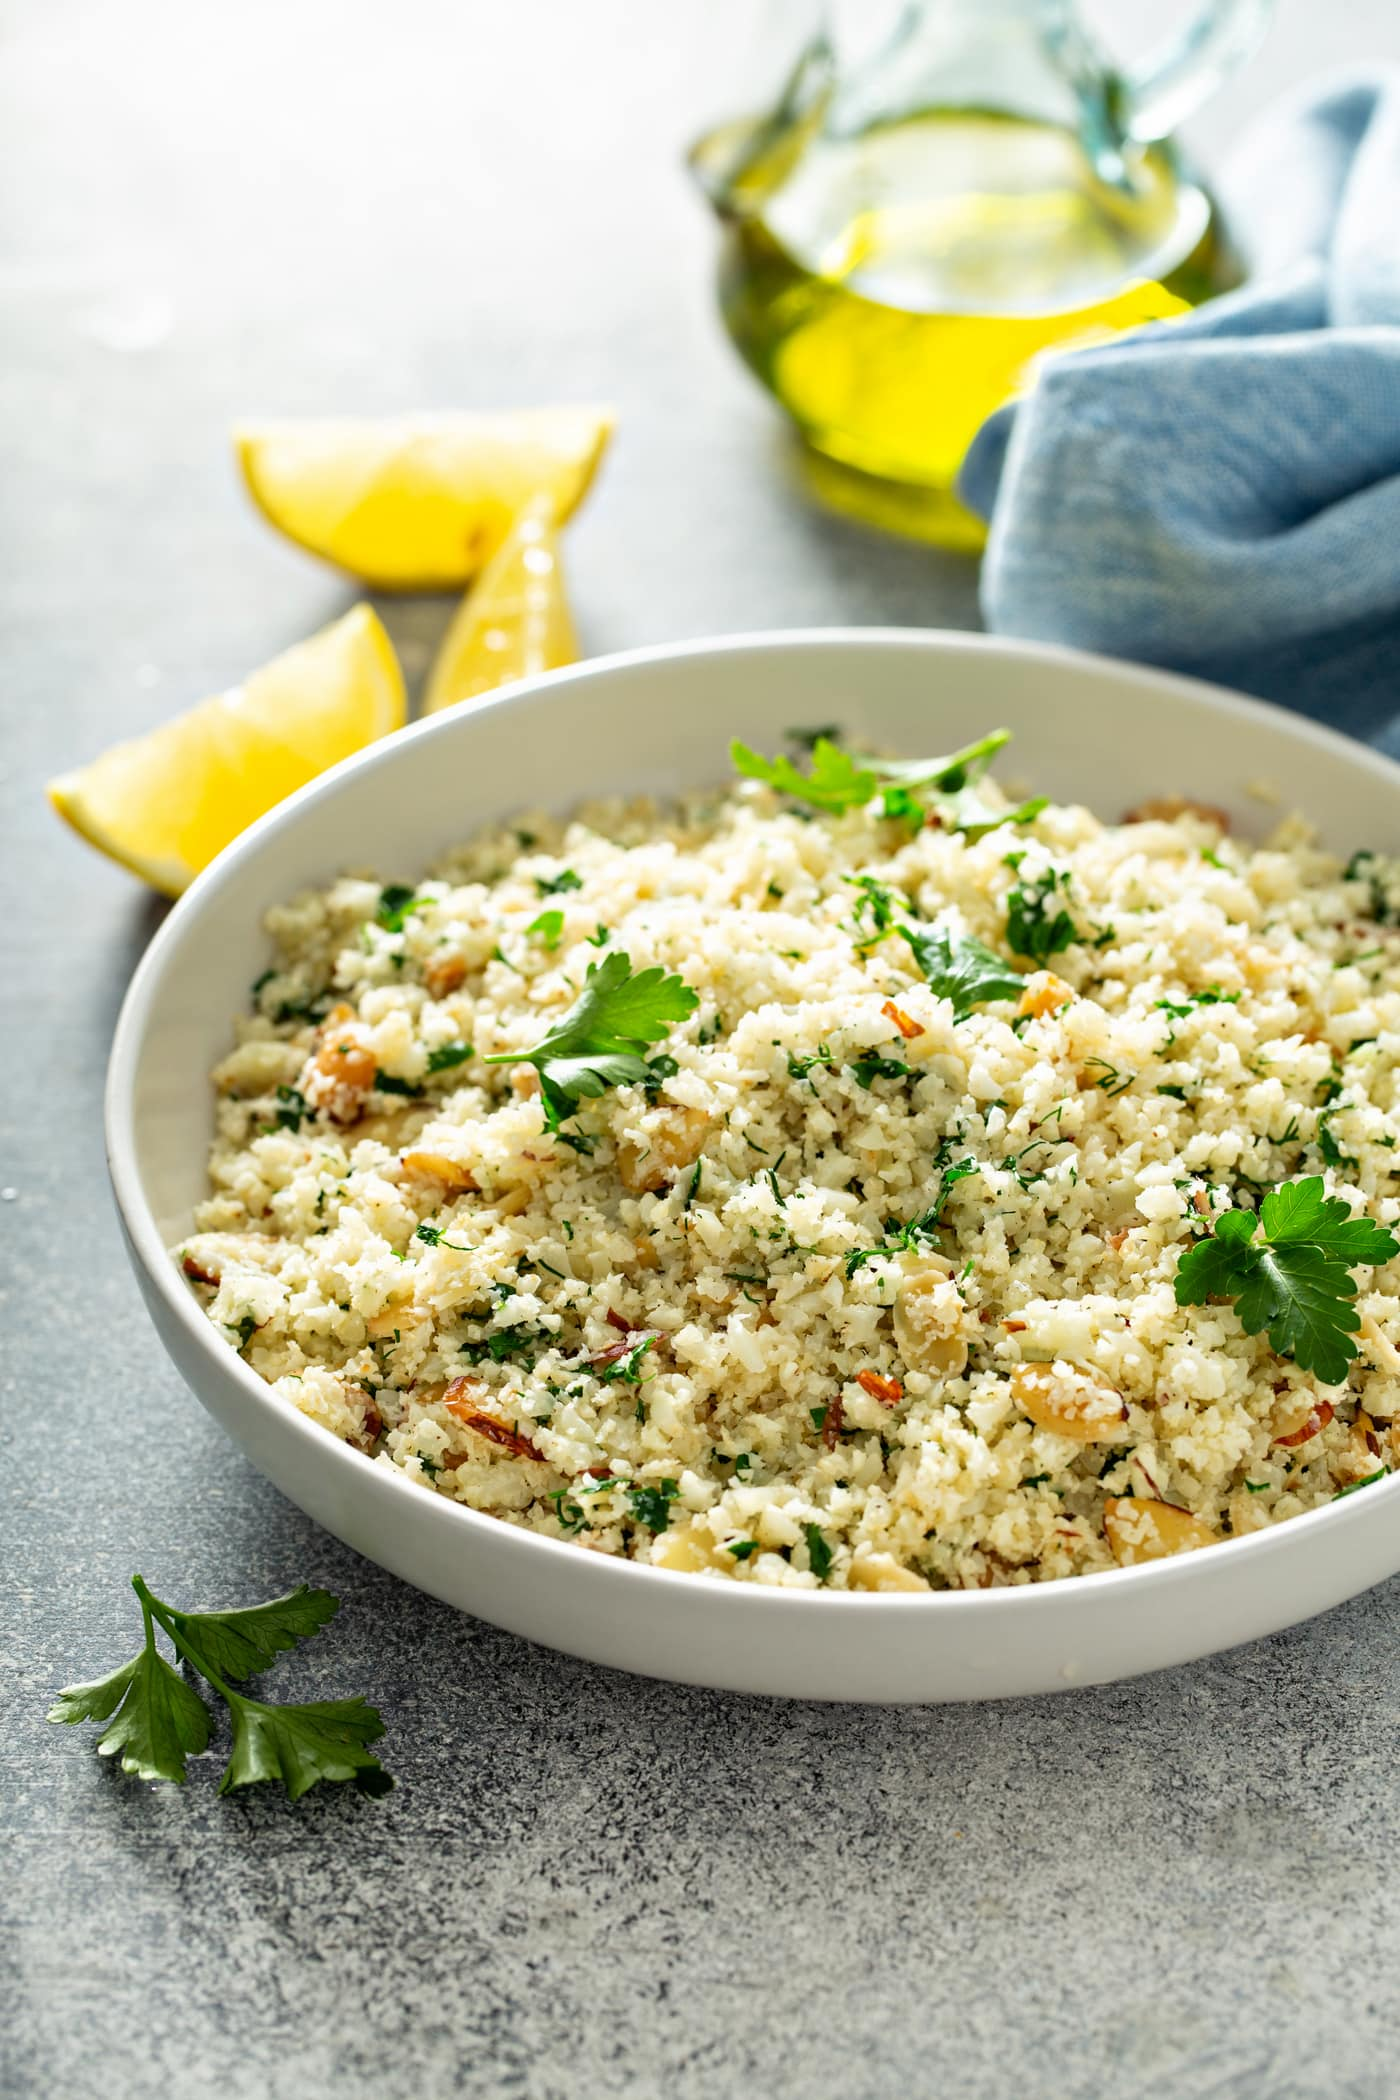 A white serving bowl containing garlic herb cauliflower rice. There are green herbs, garlic and sliced almonds in the rice. Parsley leaves are scattered on top of the rice. There are four lemon wedges next to the bowl of rice.